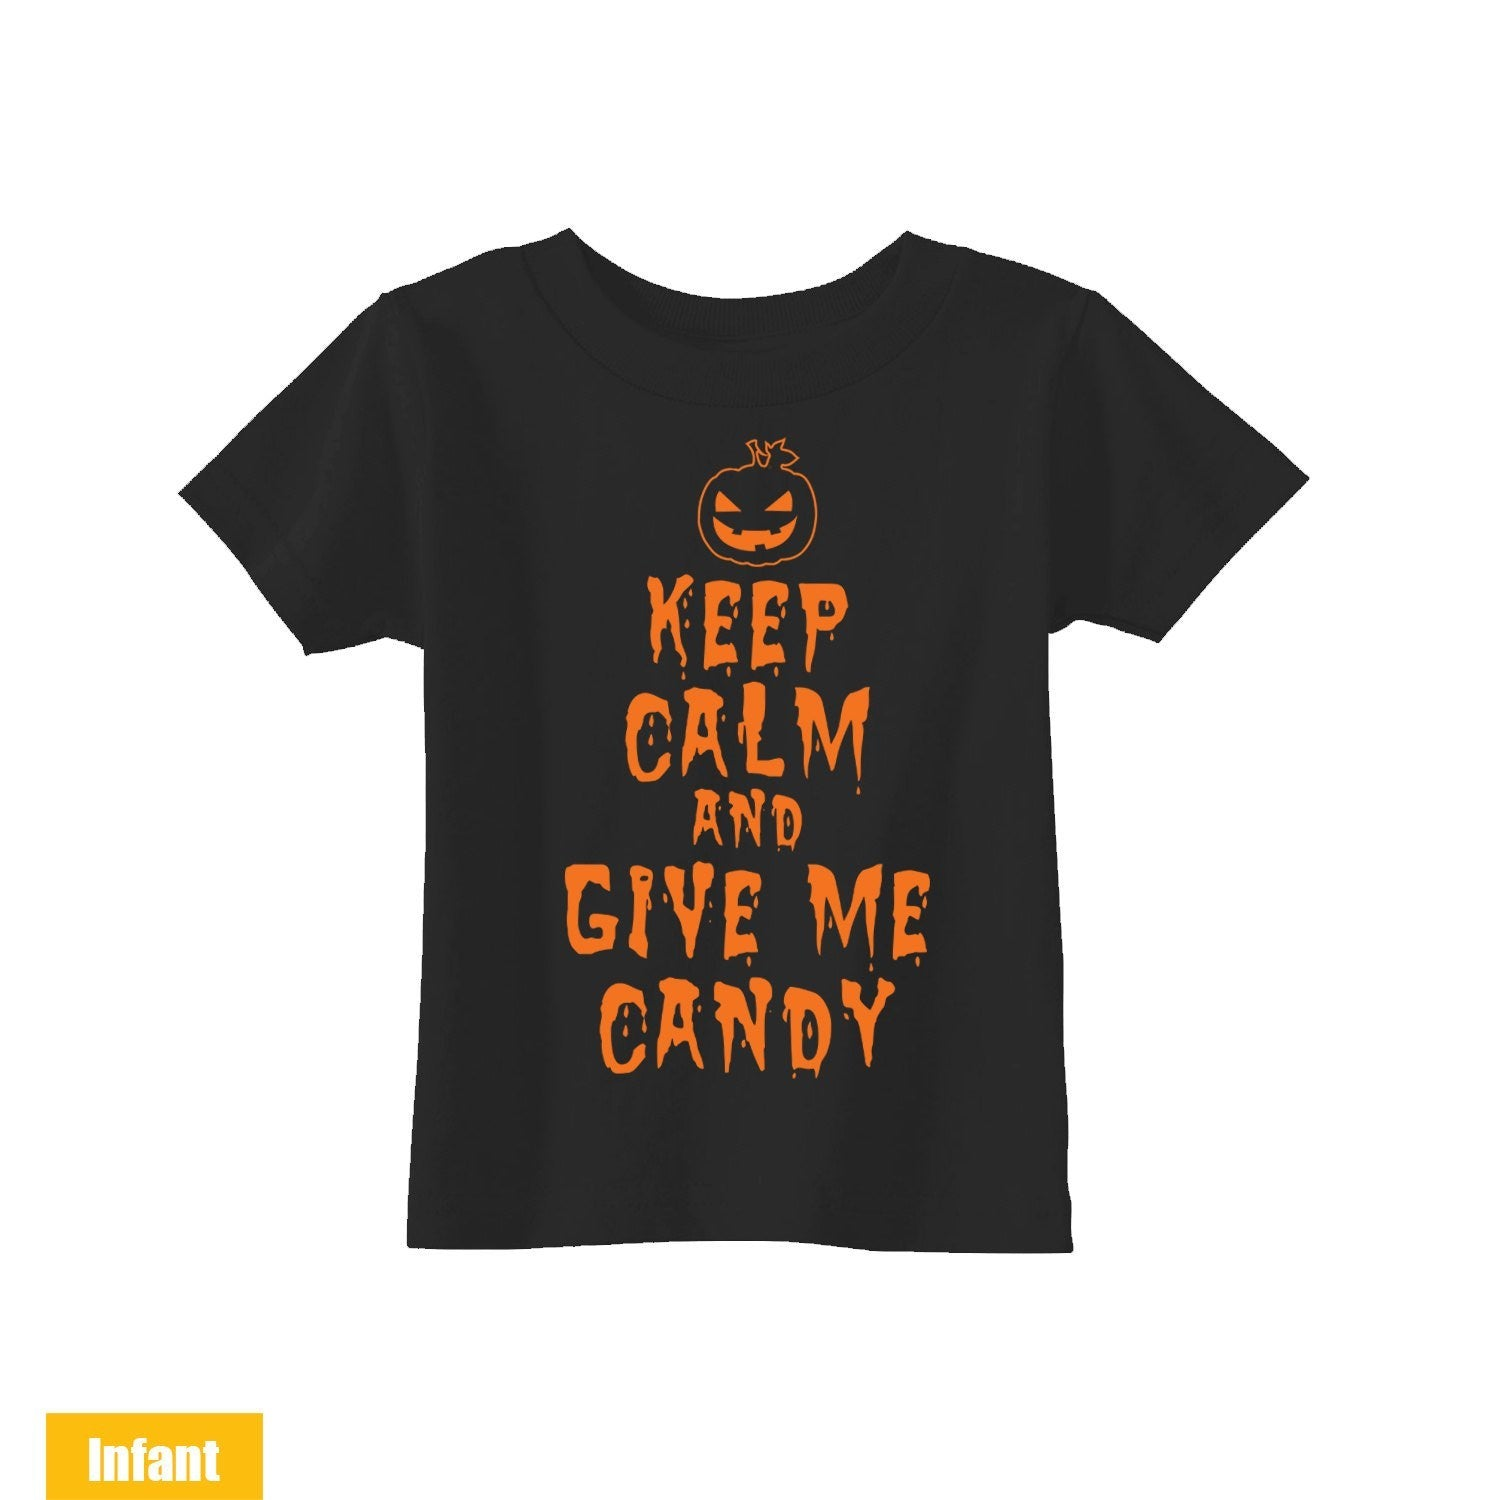 T shirt design keep calm - Halloween Cute Infant Toddler T Shirt Keep Calm And Give Me Candy Very Cute For The Cutest